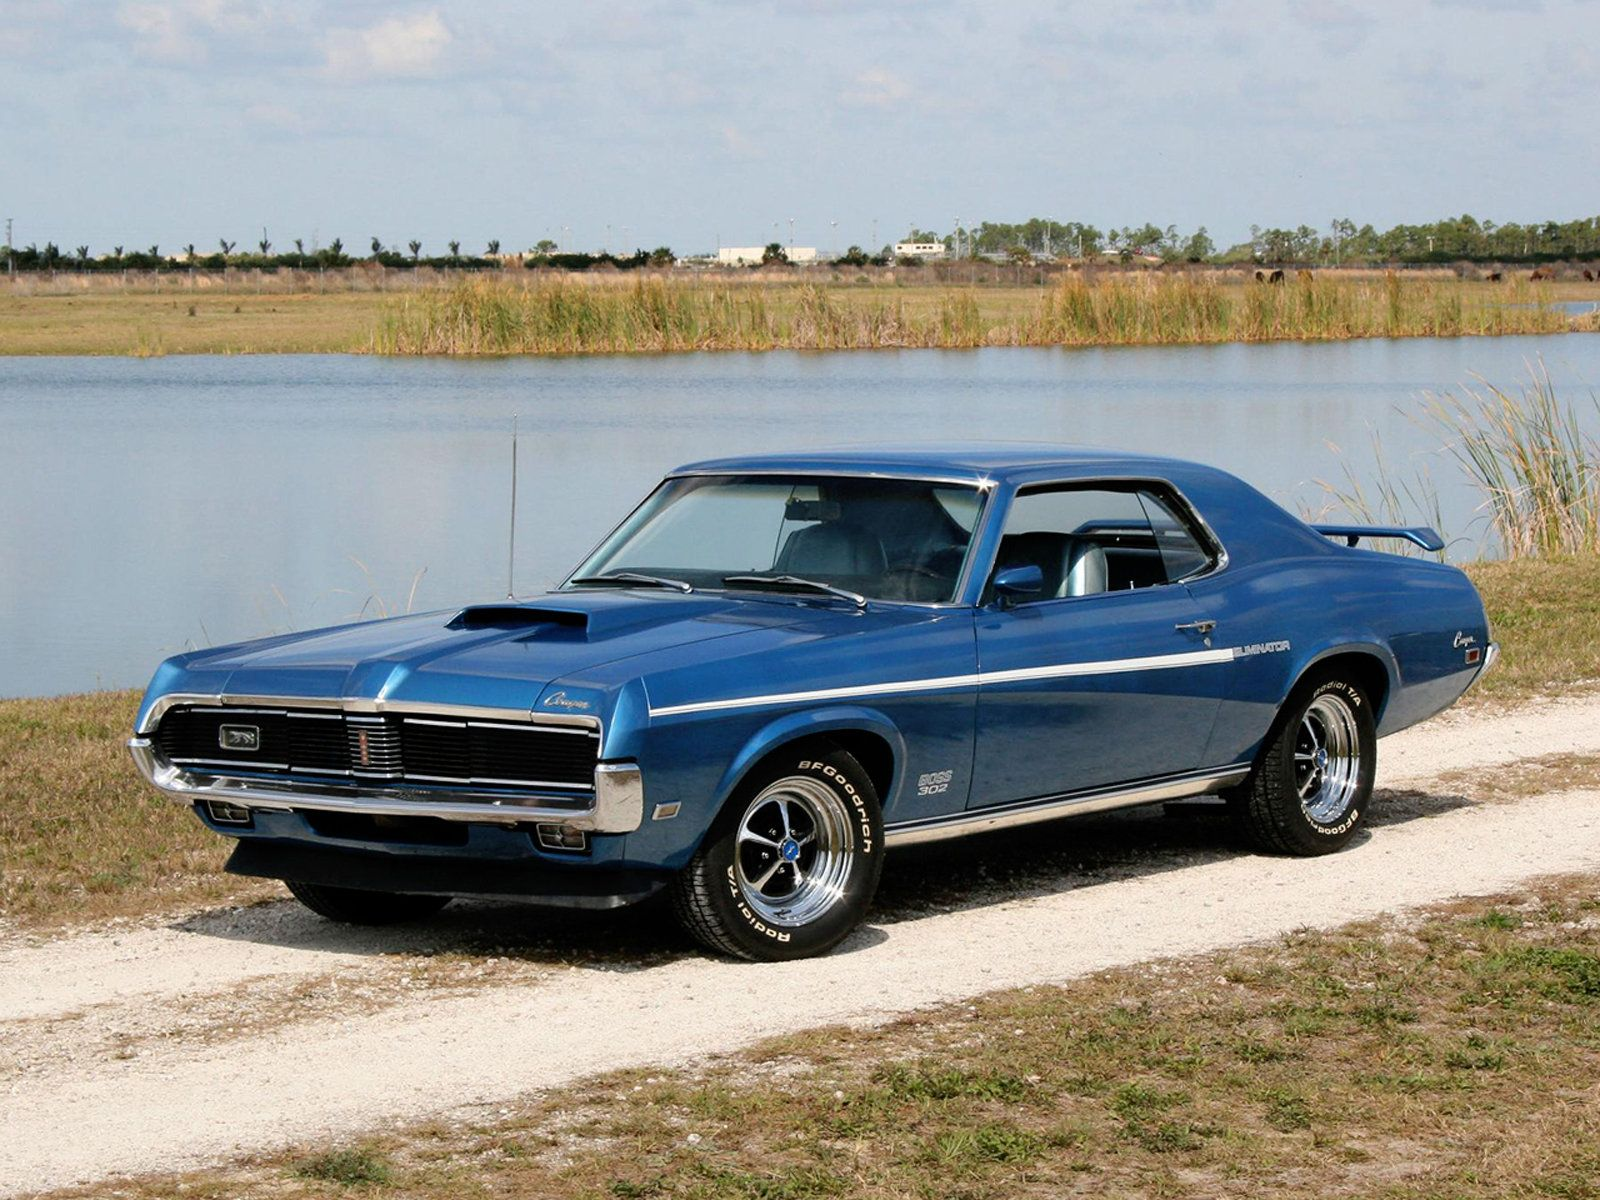 Mercury Cougar 1967 Clic Cars Drive Away 2day